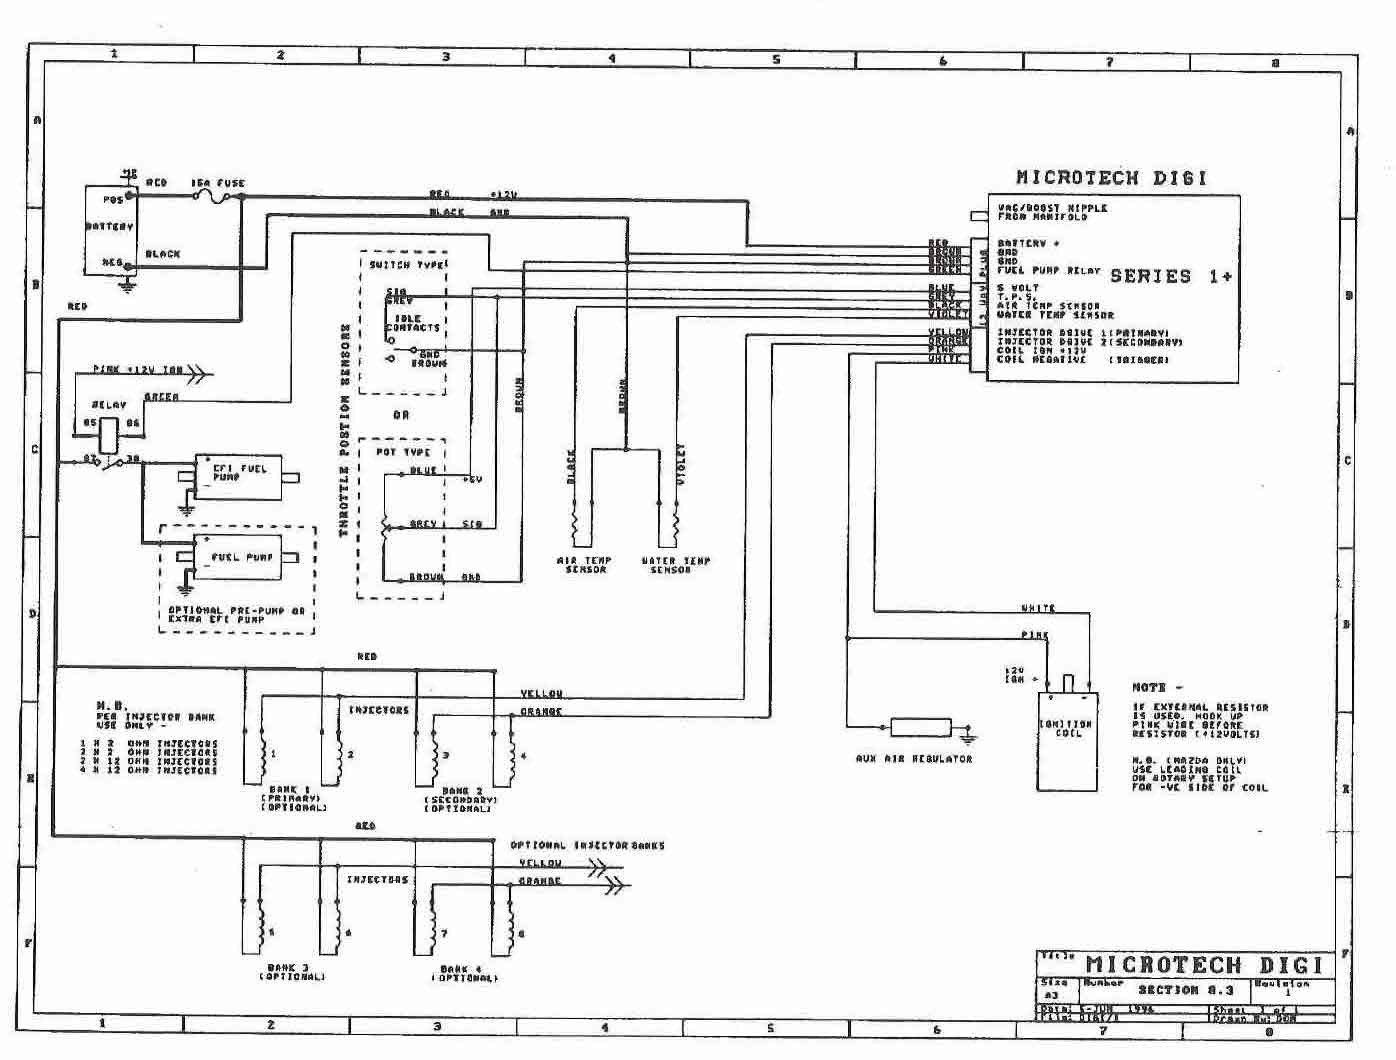 88 Mitsubishi Starion Ecu Pinout Wire Diagram Wiring Library. Rx7 12a Wiring Diagram Schematics Diagrams U2022 Rh Parntesis Co 1987 Wiringdiagram. Wiring. Conquest Tsi Engine Setup Diagram At Scoala.co